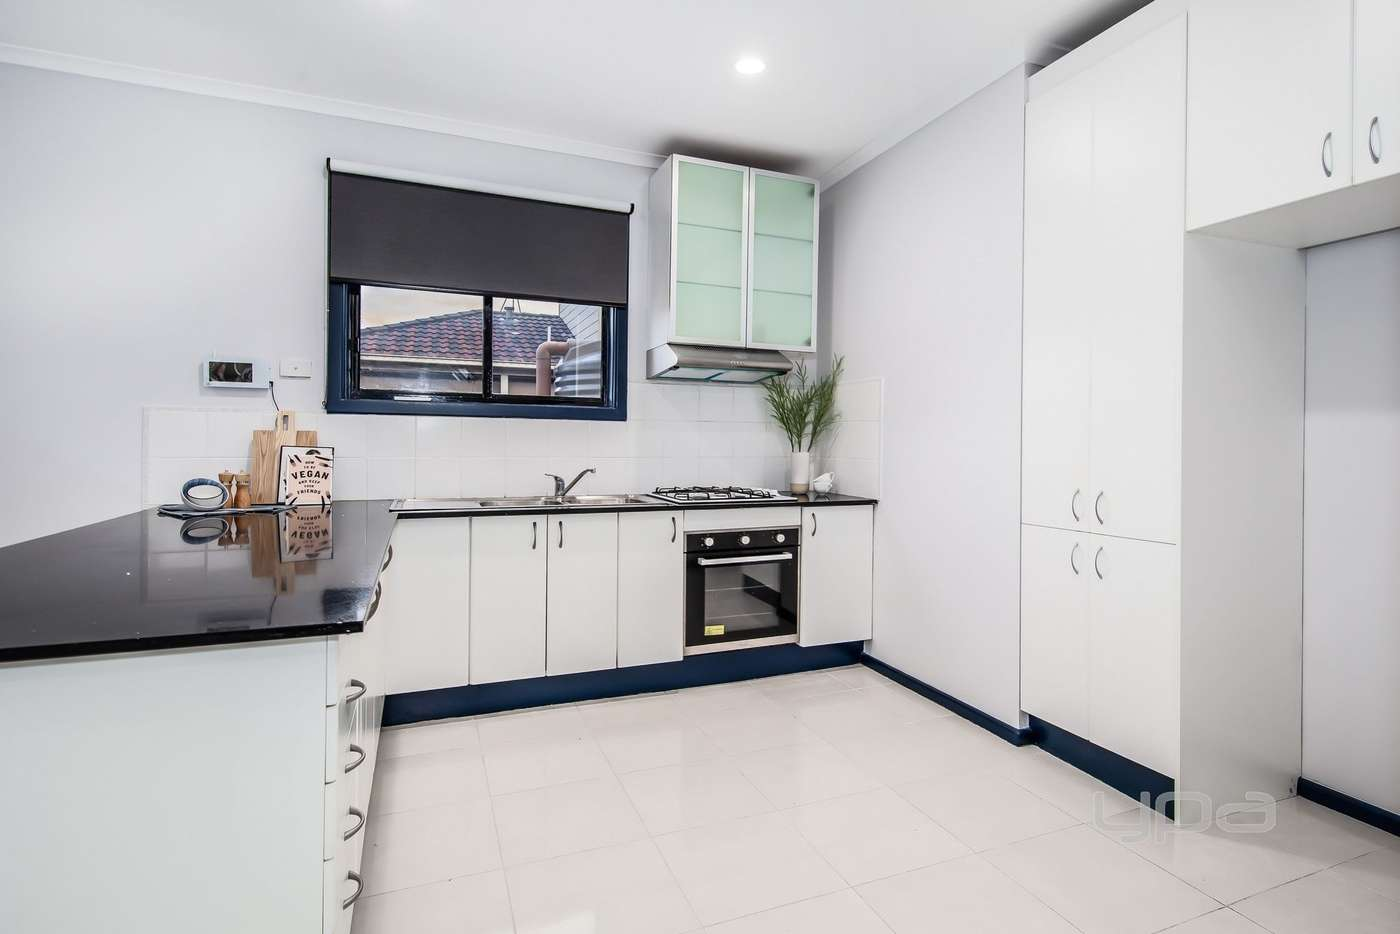 Sixth view of Homely house listing, 33 Pro Hart Way, Caroline Springs VIC 3023